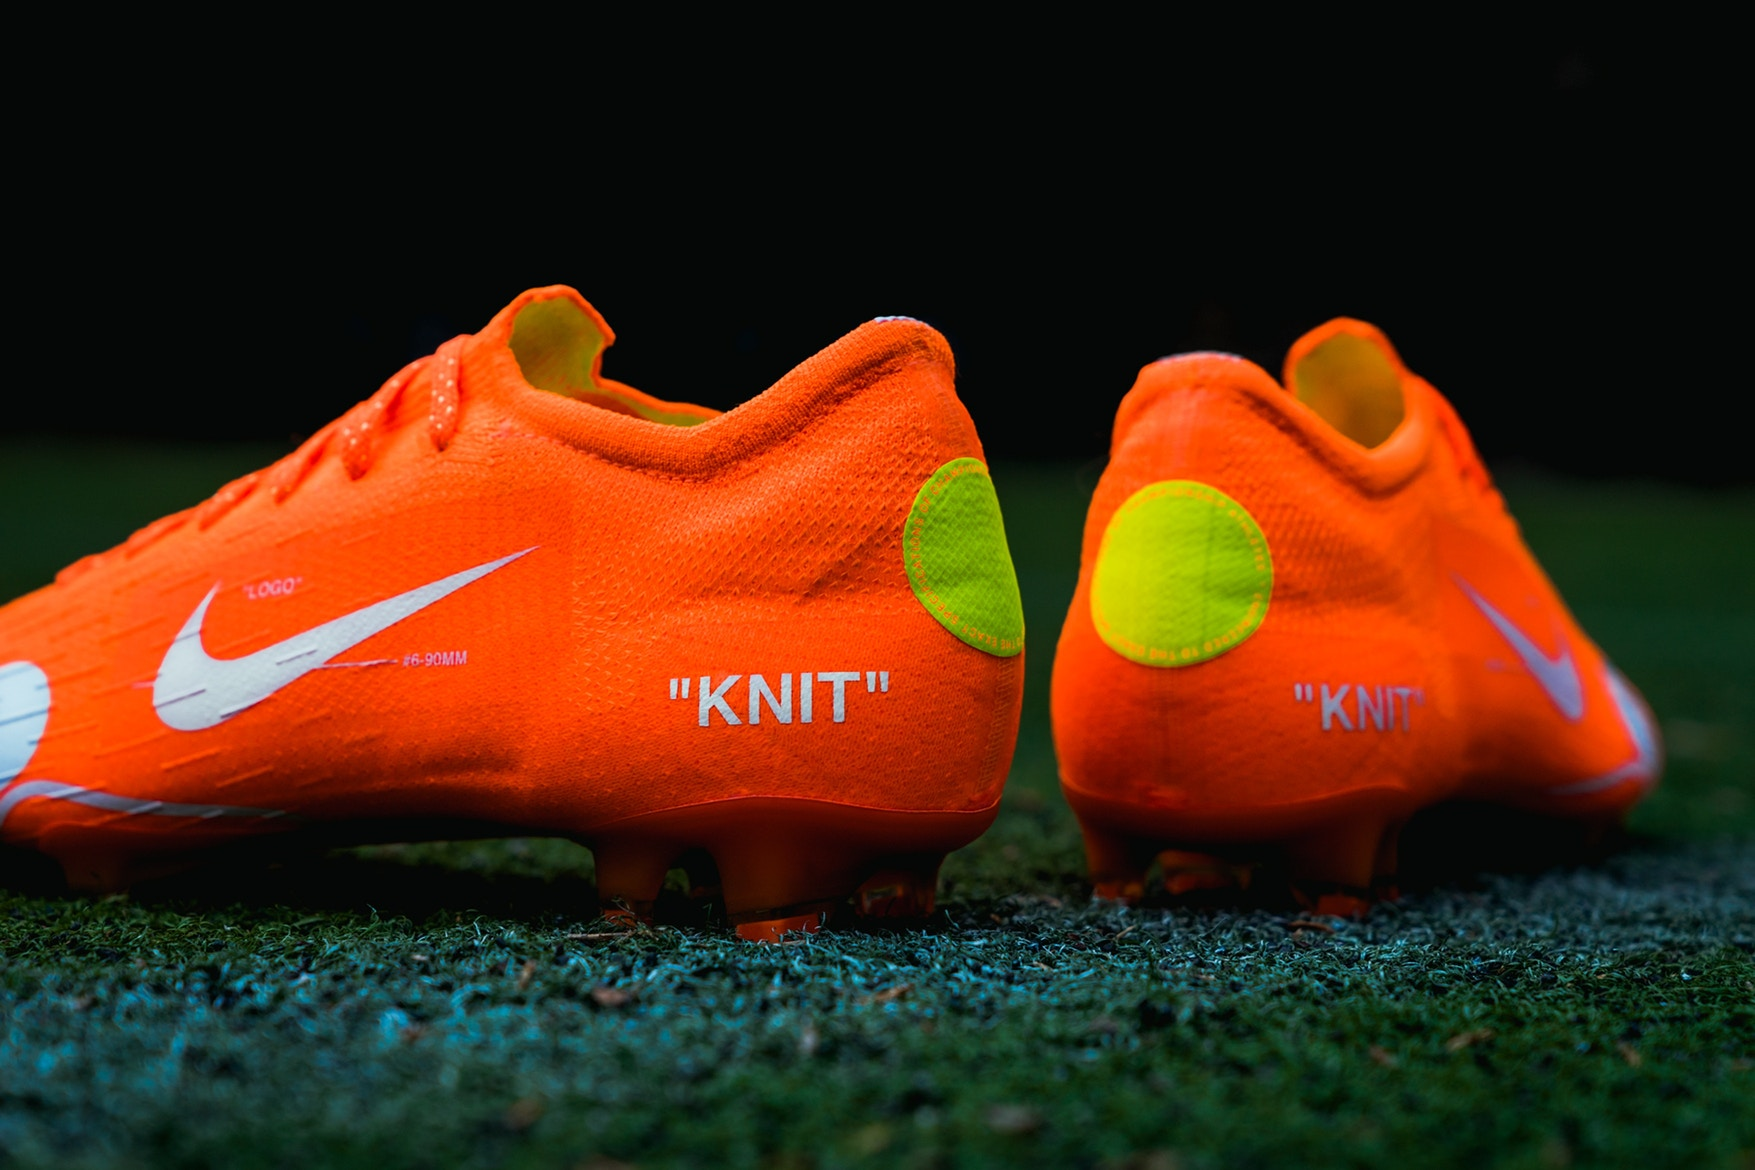 off-white-nike-mercurial-closer-look-4